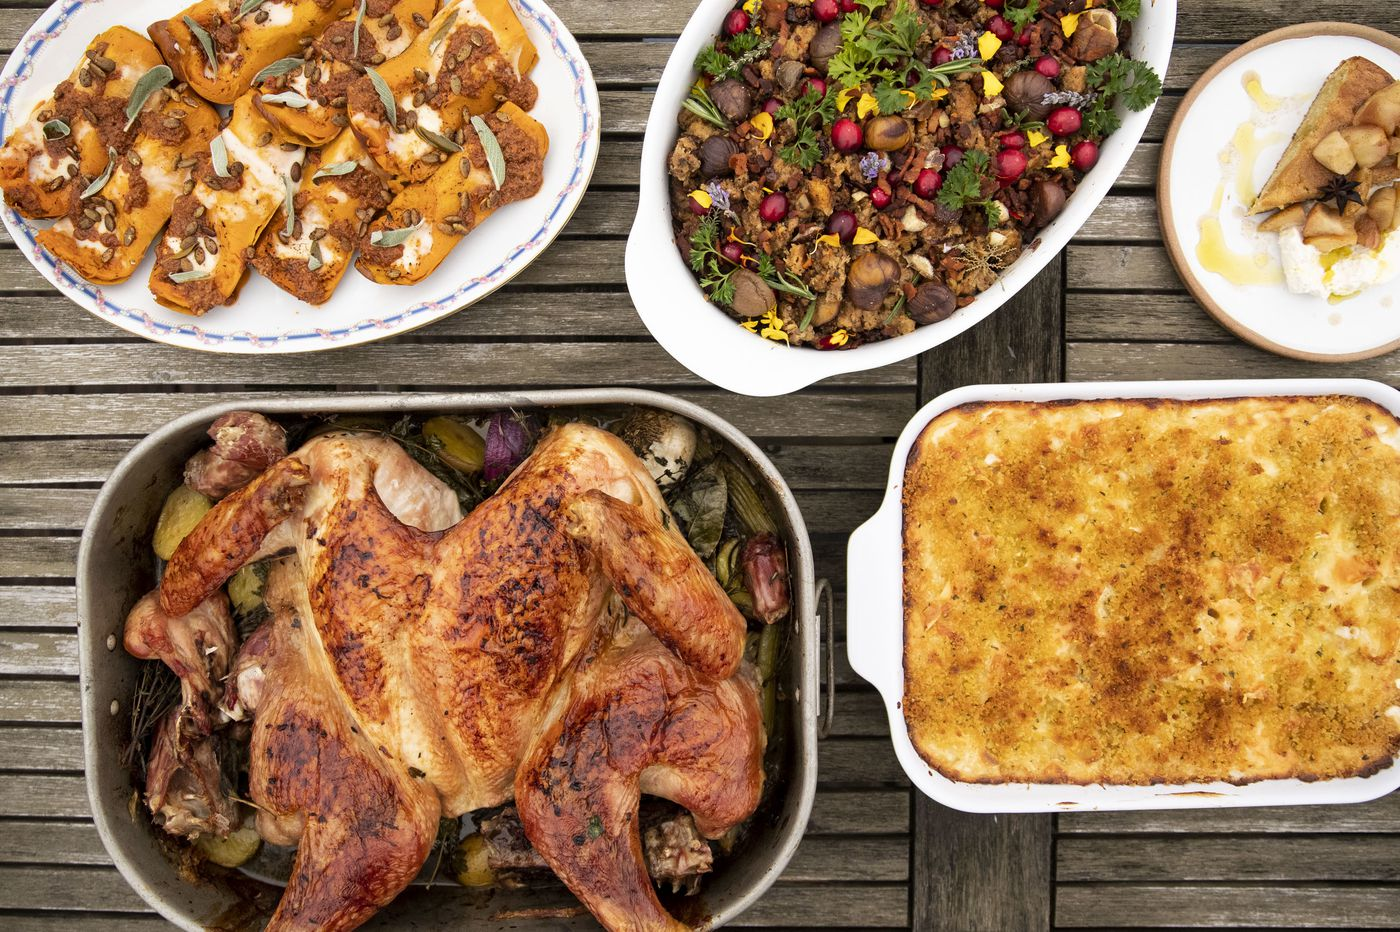 We asked 4 of Philly's top chefs to make Thanksgiving dinner. Here's what they cooked.